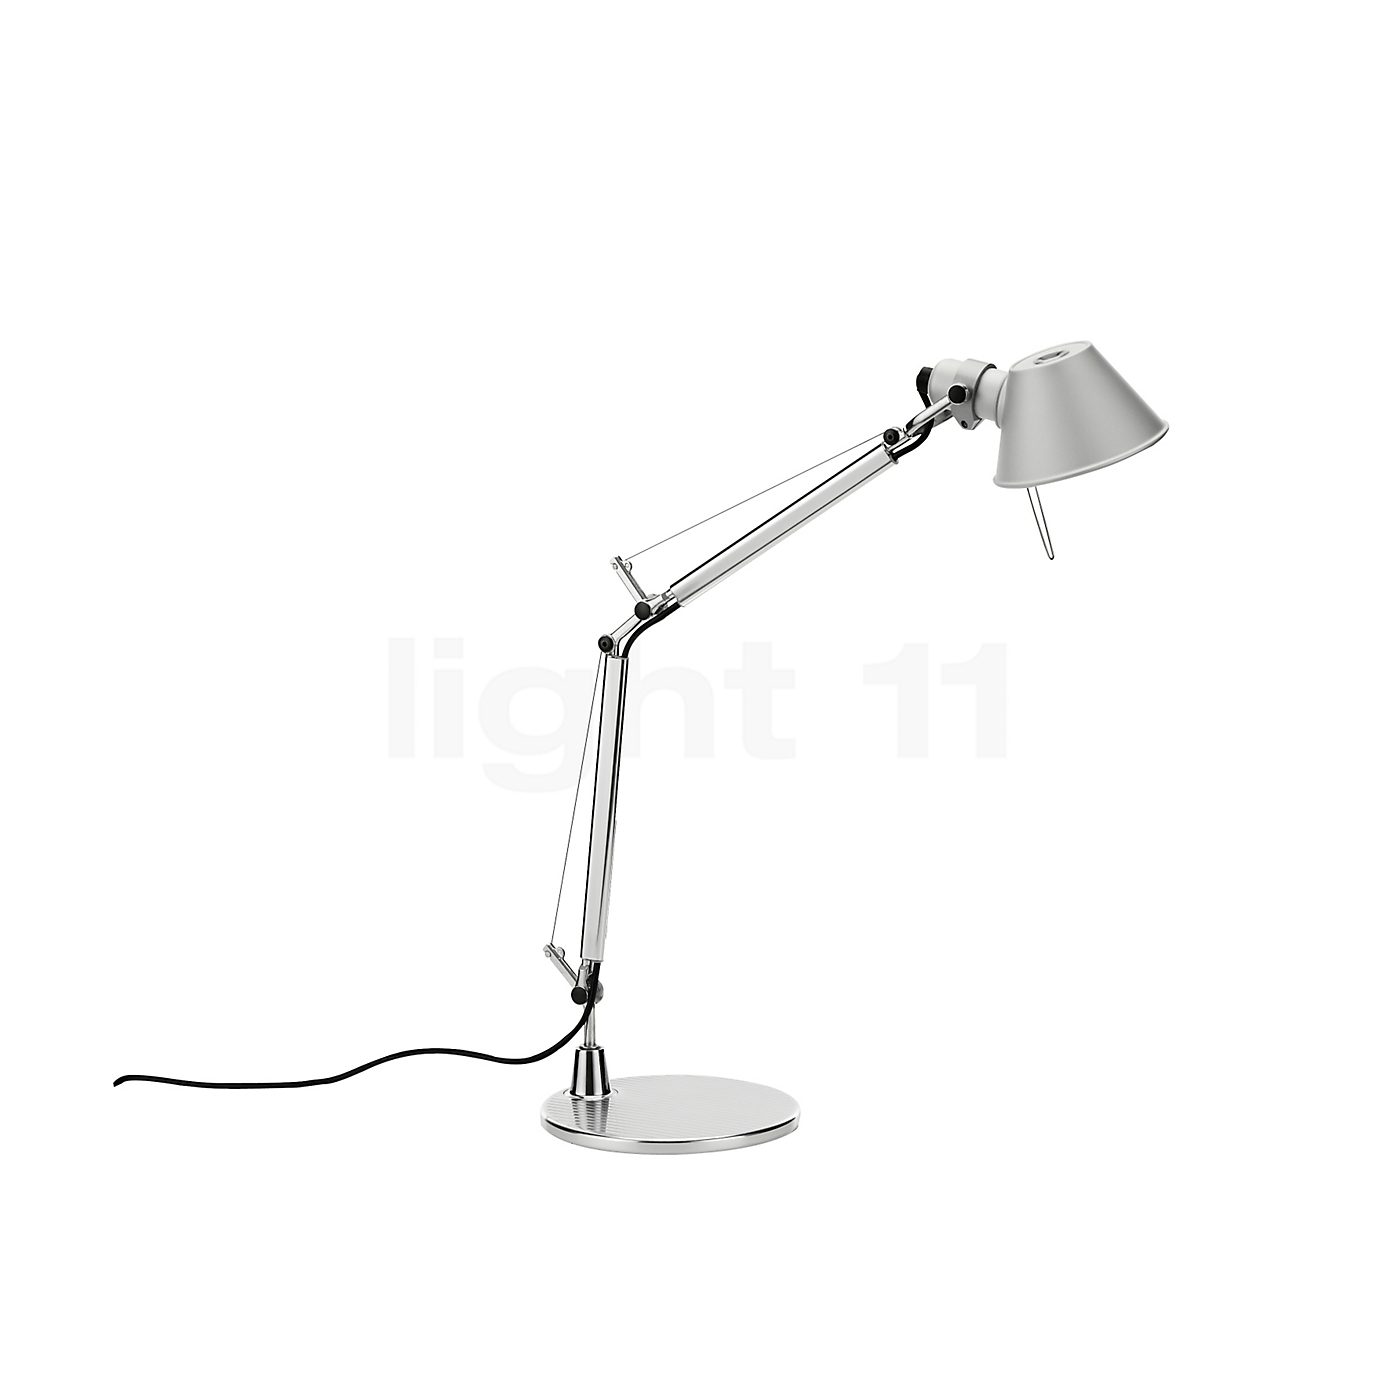 artemide tolomeo micro led avec pied en vente sur. Black Bedroom Furniture Sets. Home Design Ideas